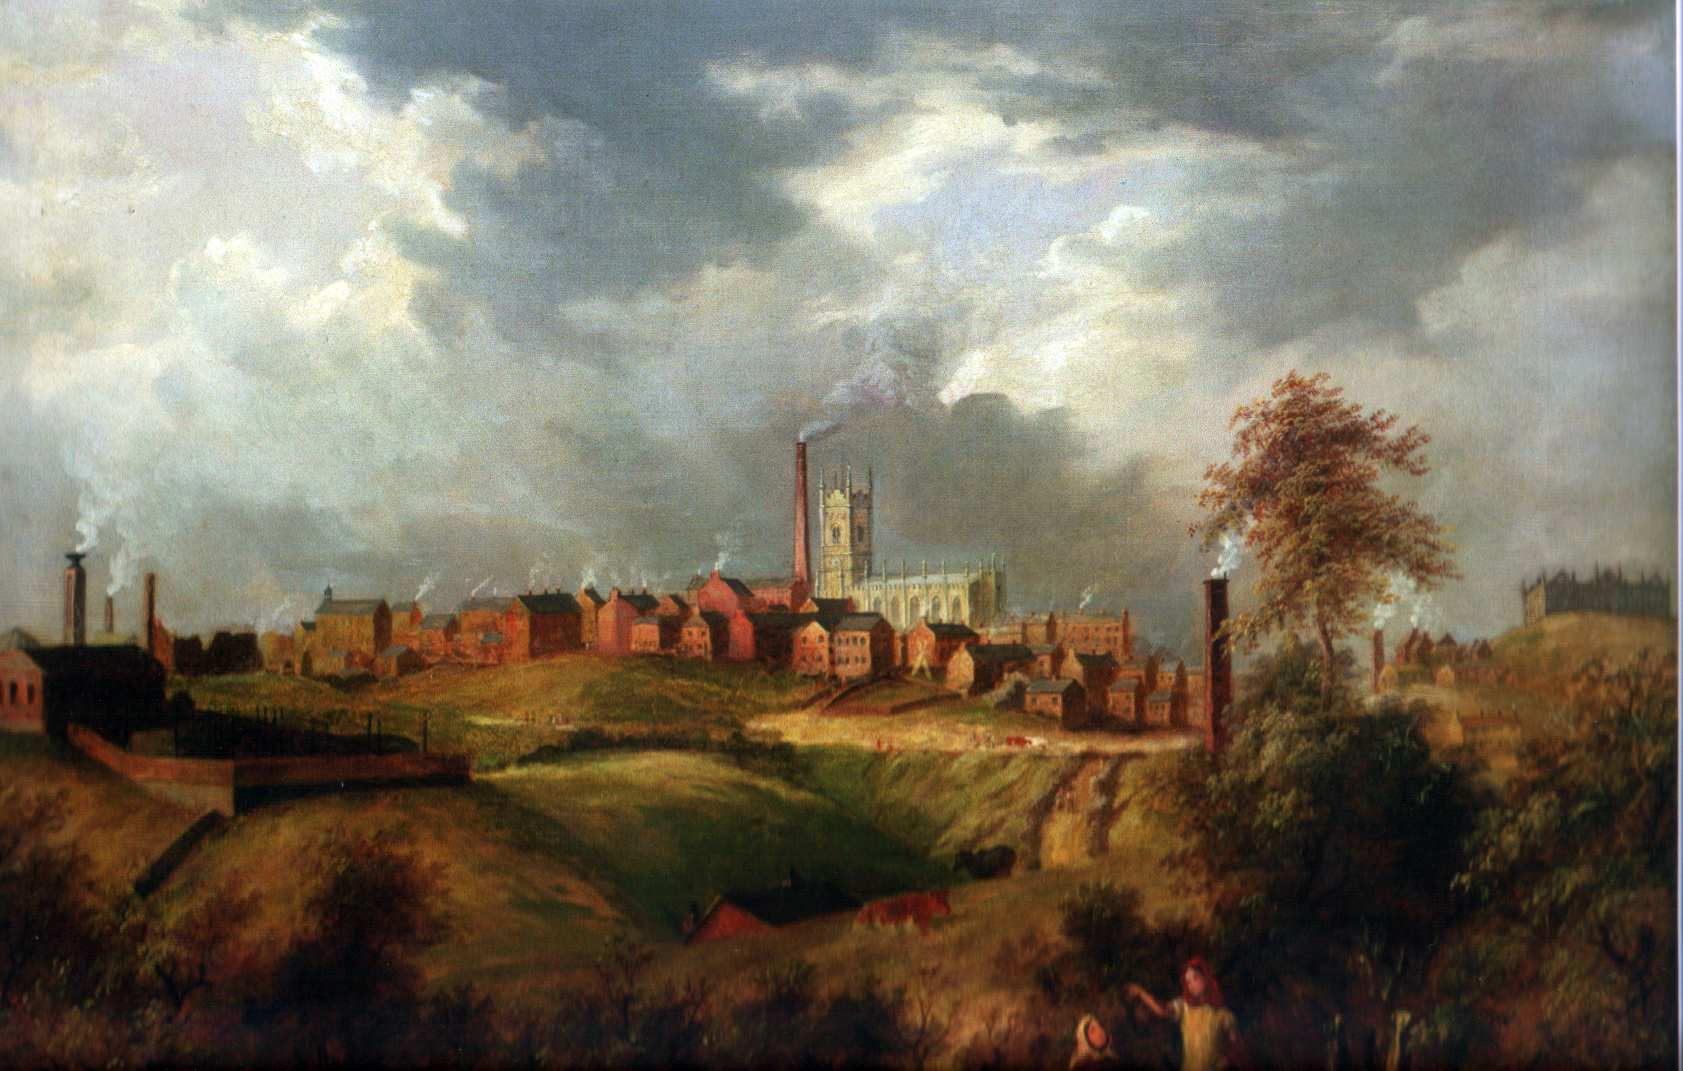 Oldham, painted during the Industrial Revolution. Many towns in Greater Manchester were built around the mills.